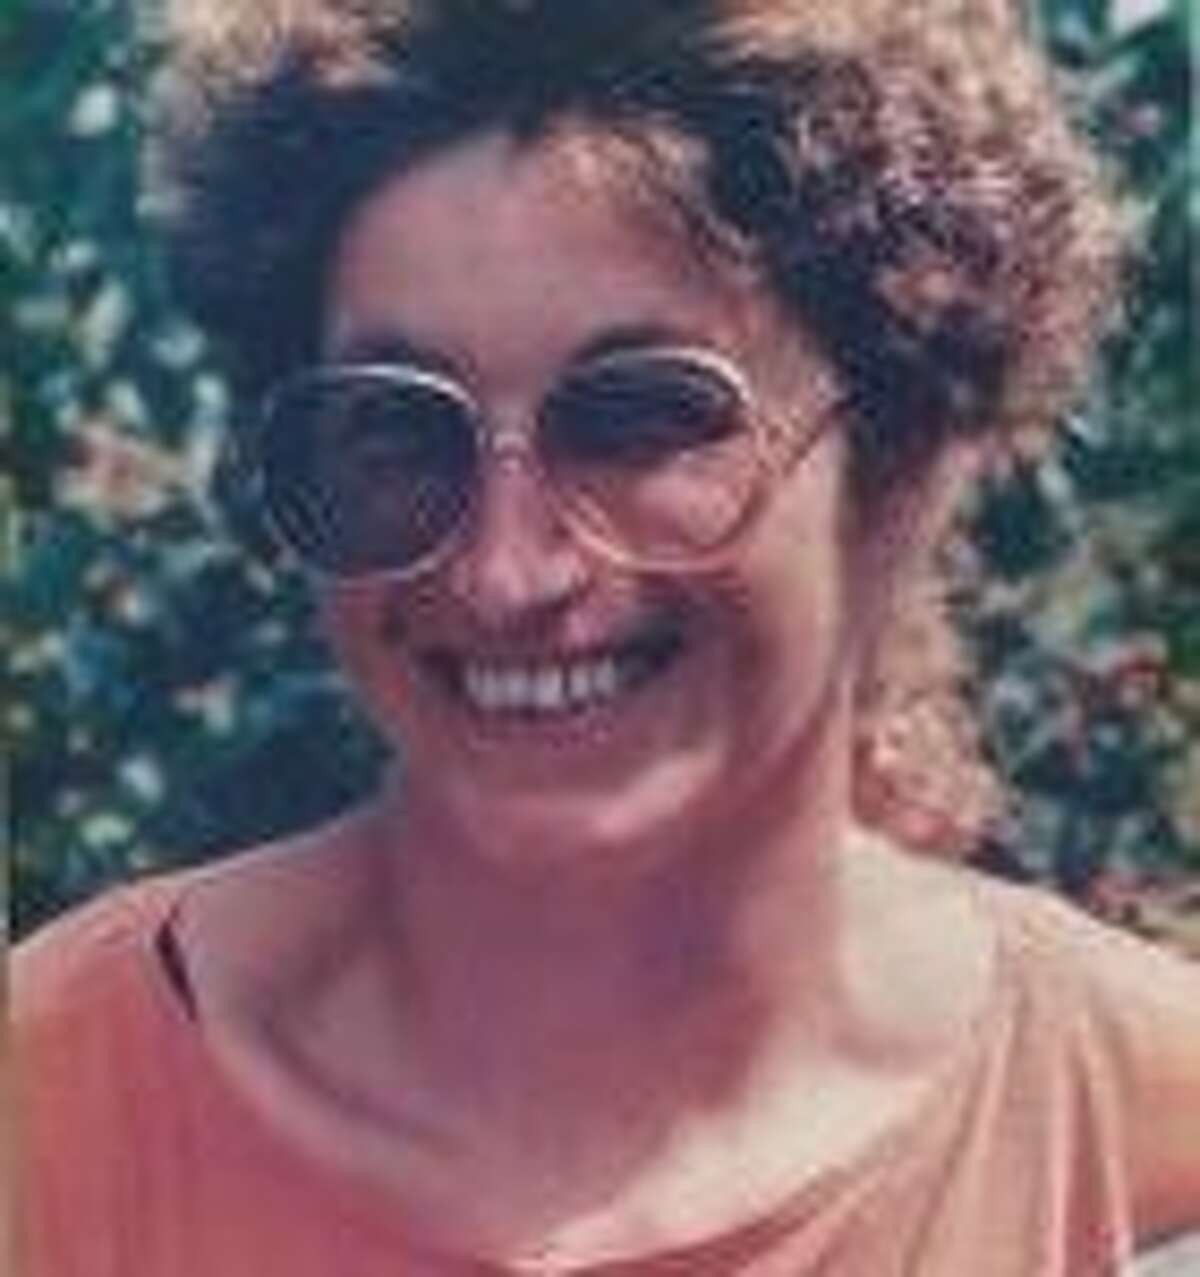 At about 3 a.m. on July 8, 1993, police found 37-year-old Betty Conley dead inside a Charlton Xtra Mart, where she worked as a clerk. Cash had been stolen from the register. (Saratoga County Sheriff's Office)